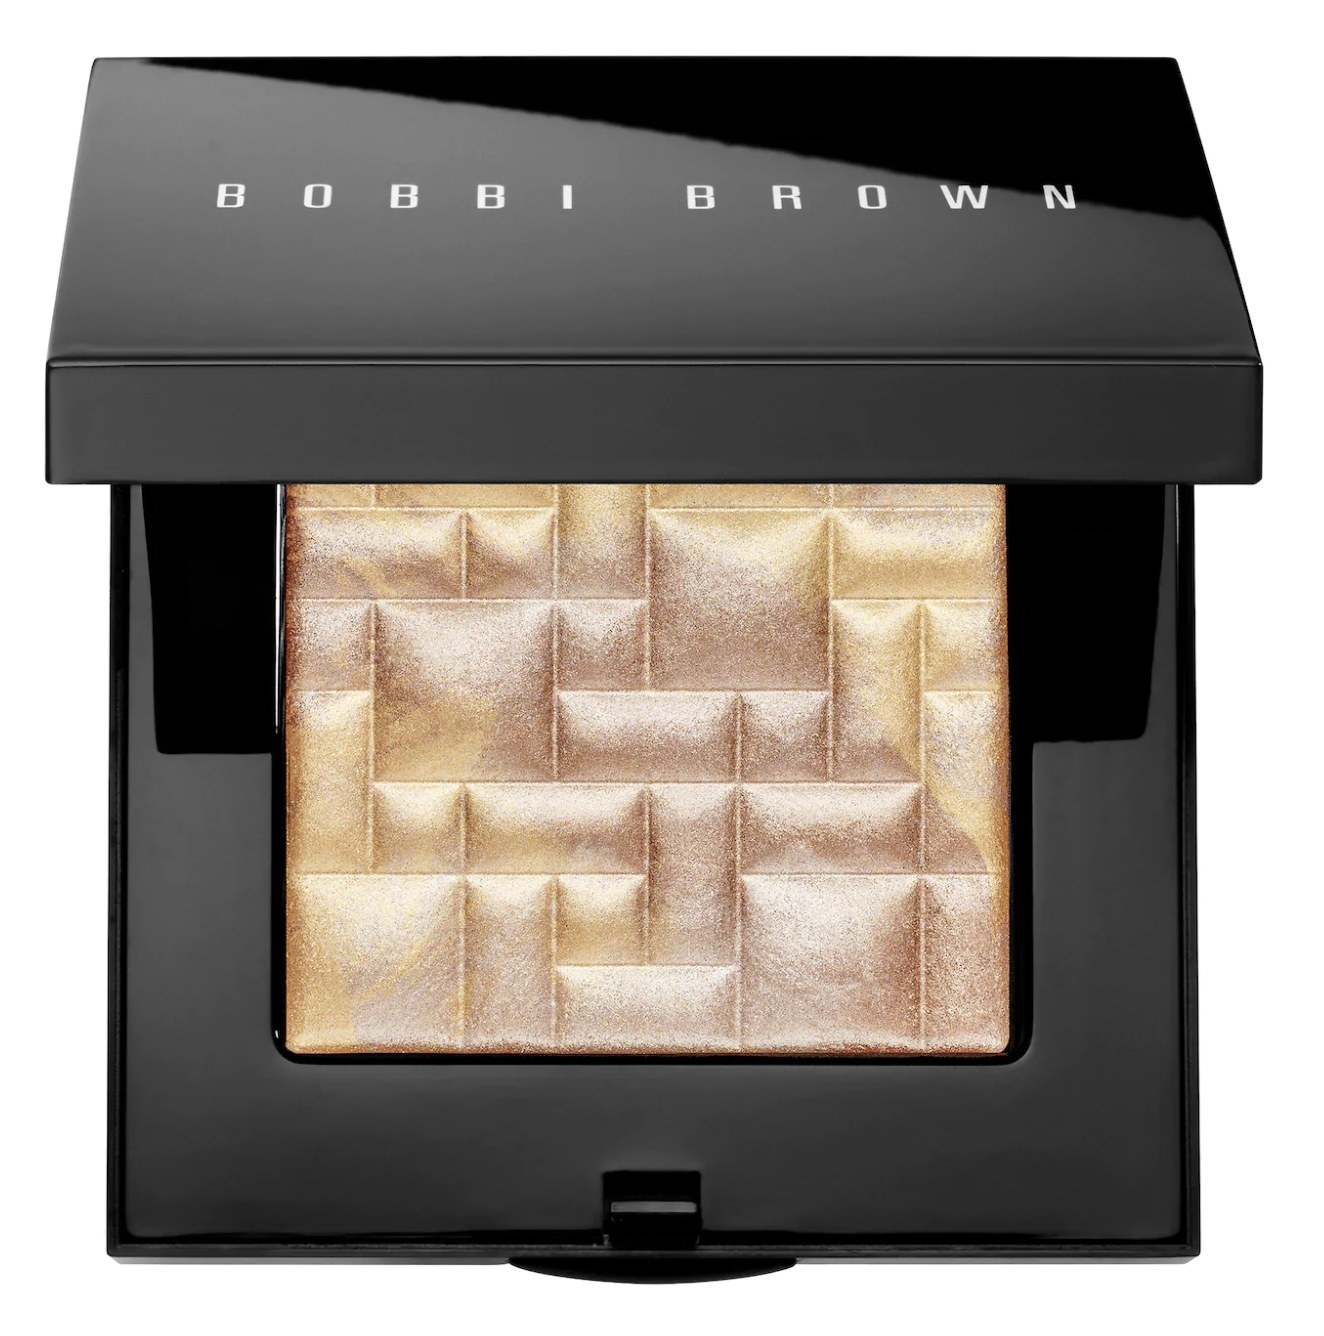 A compact with a makeup highlighter